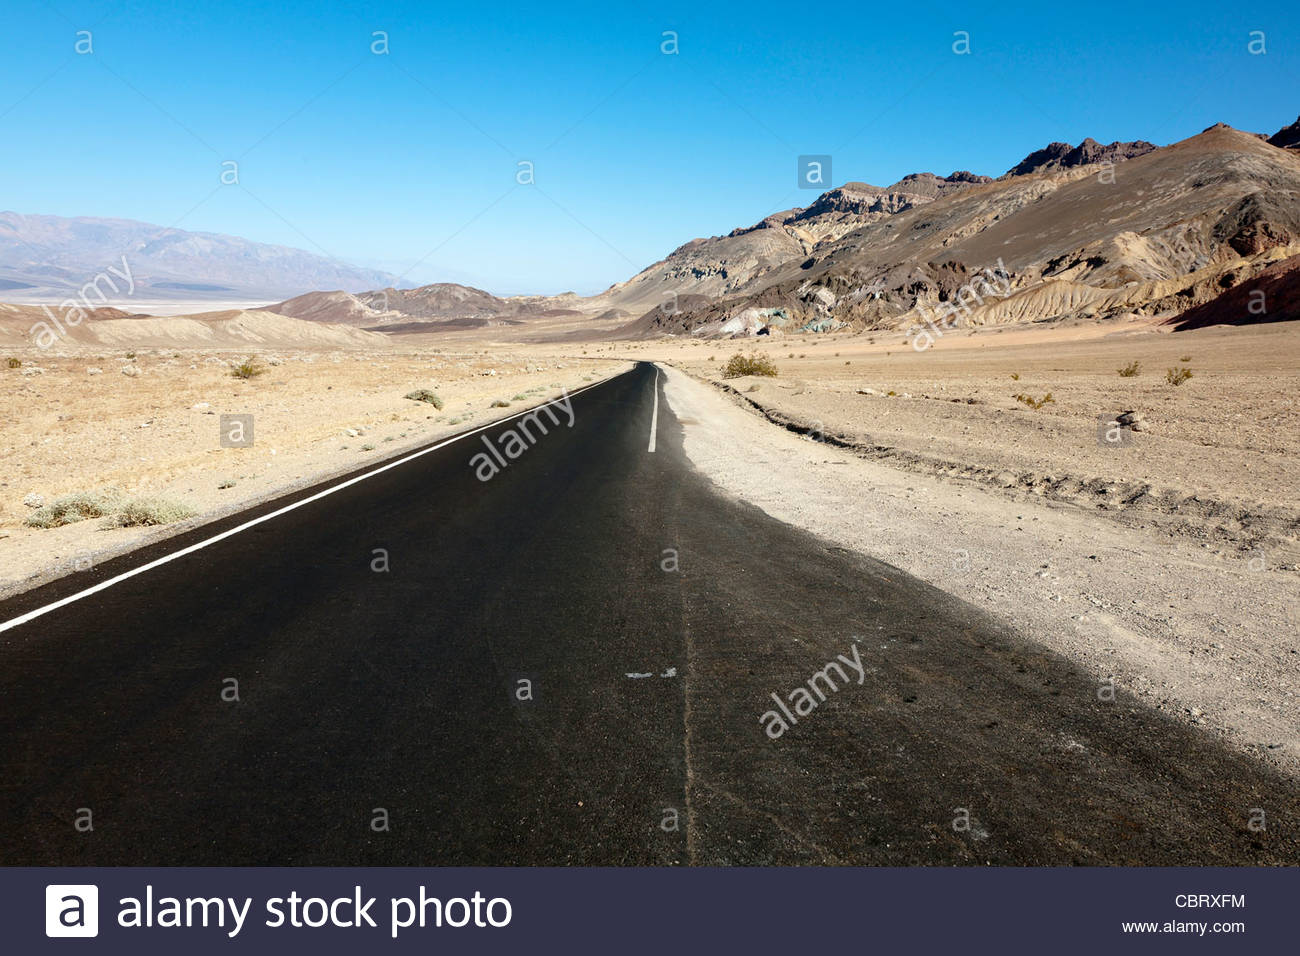 Desert Road in Death Valley National Park, California, United States - Stock Image